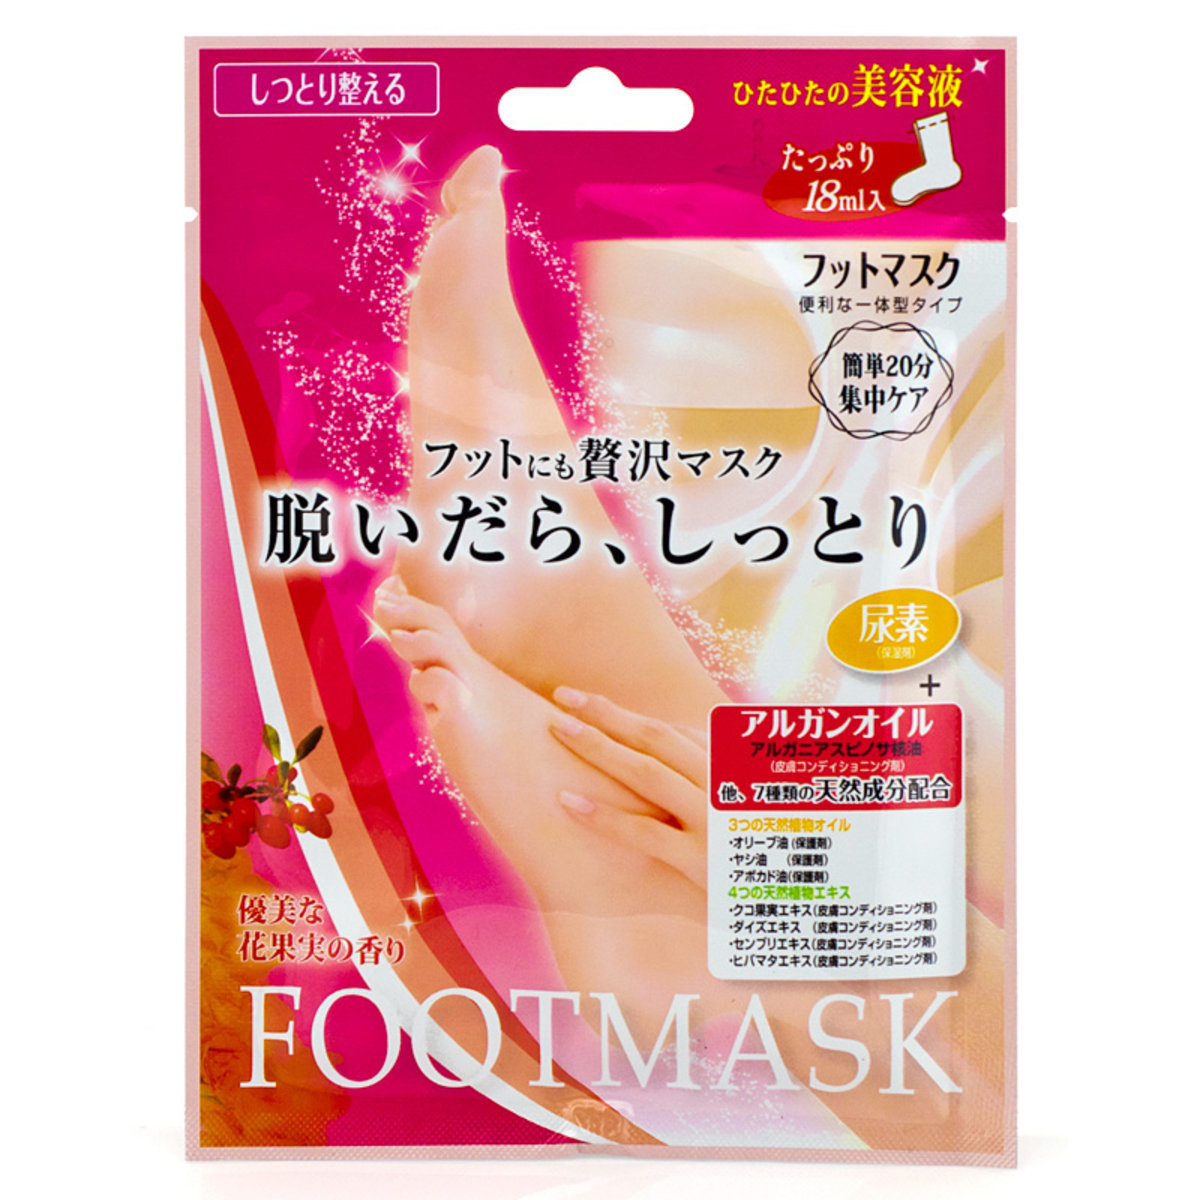 Beauty World - Lucky Trendy Moisturing Foot Mask 18ml x1 (Parallel Import)